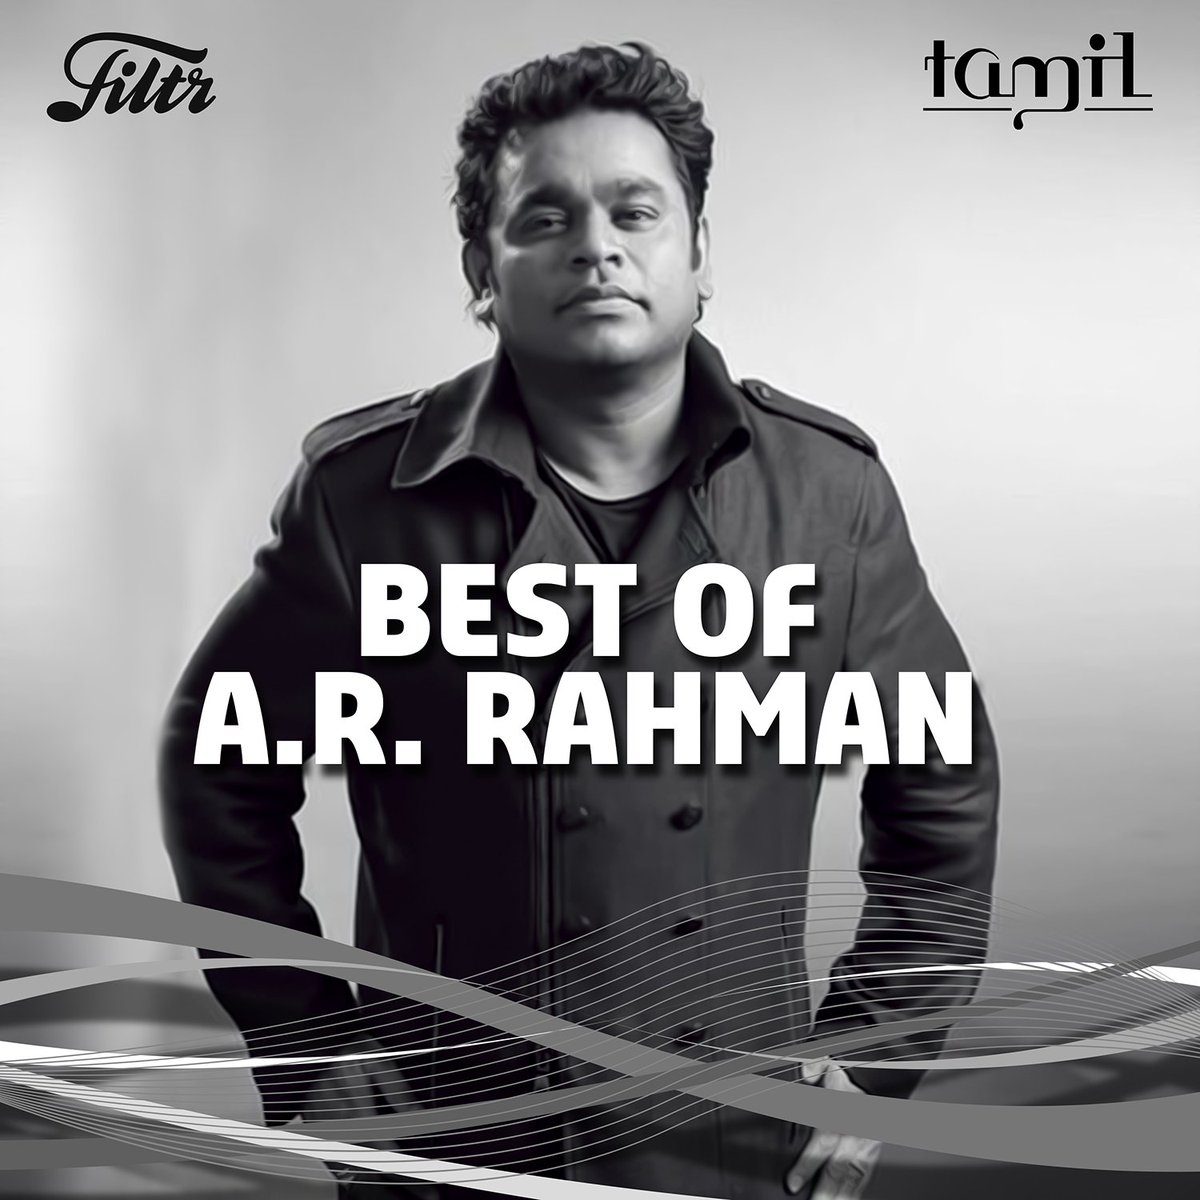 Dive into the world of #Isaipuyal's tunes! ♥️  #BestOfARRahman right here ➡️https://t.co/VlpyT6JWCr  #KaadhalTapes #MusicHeals #VeetlaIsai https://t.co/UHPTNkkx0b